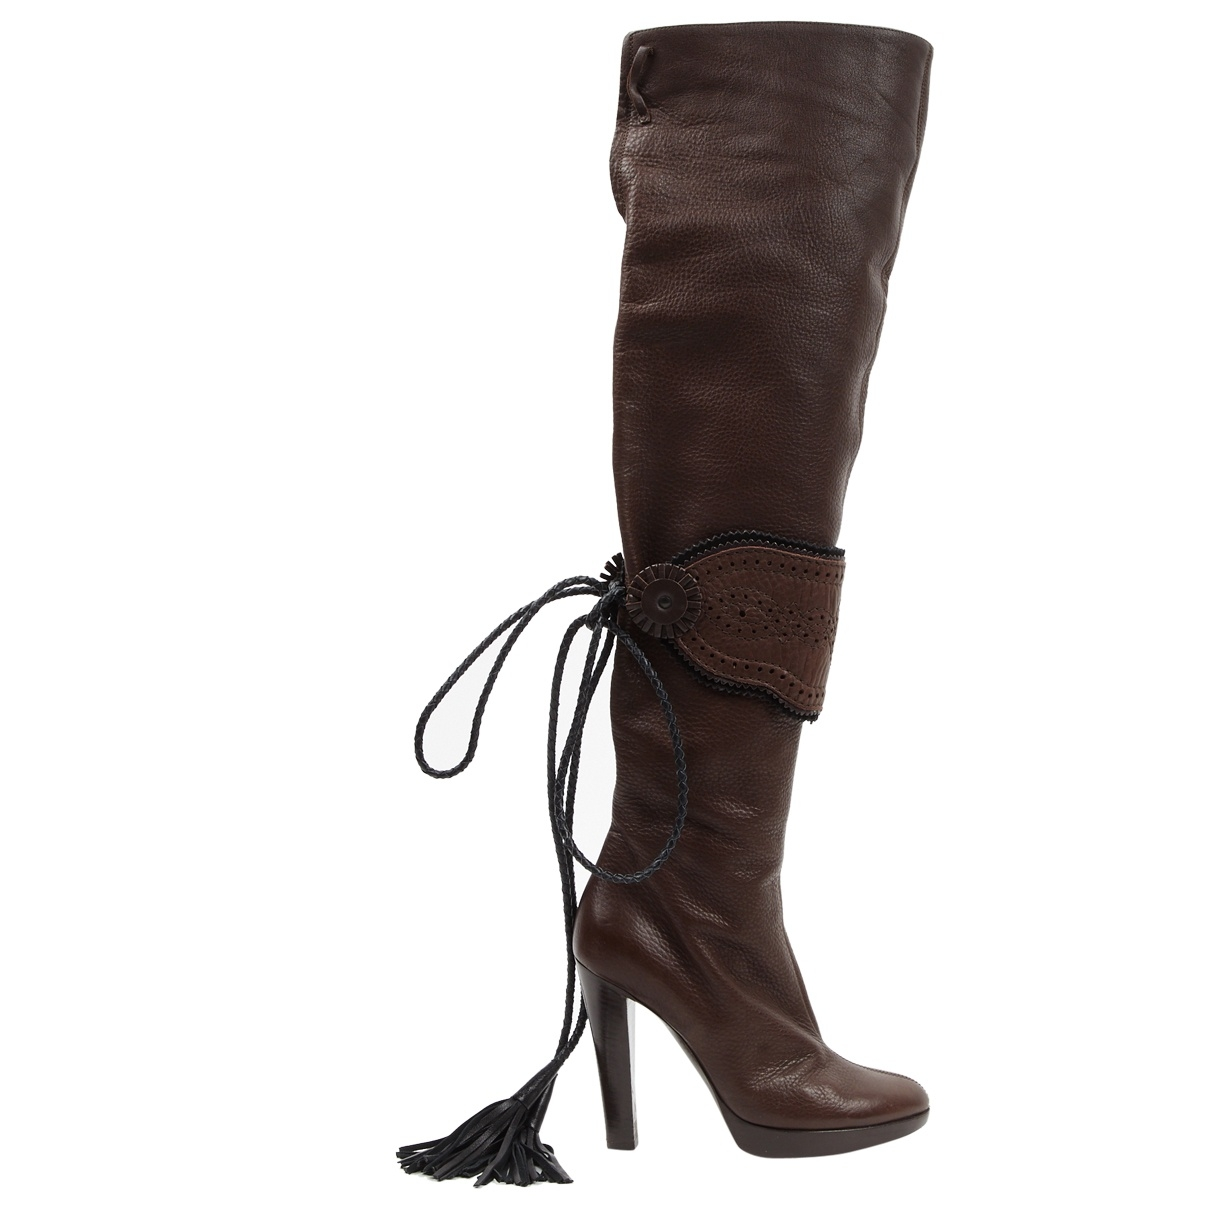 Gianfranco Ferré \N Brown Leather Boots for Women 36 EU